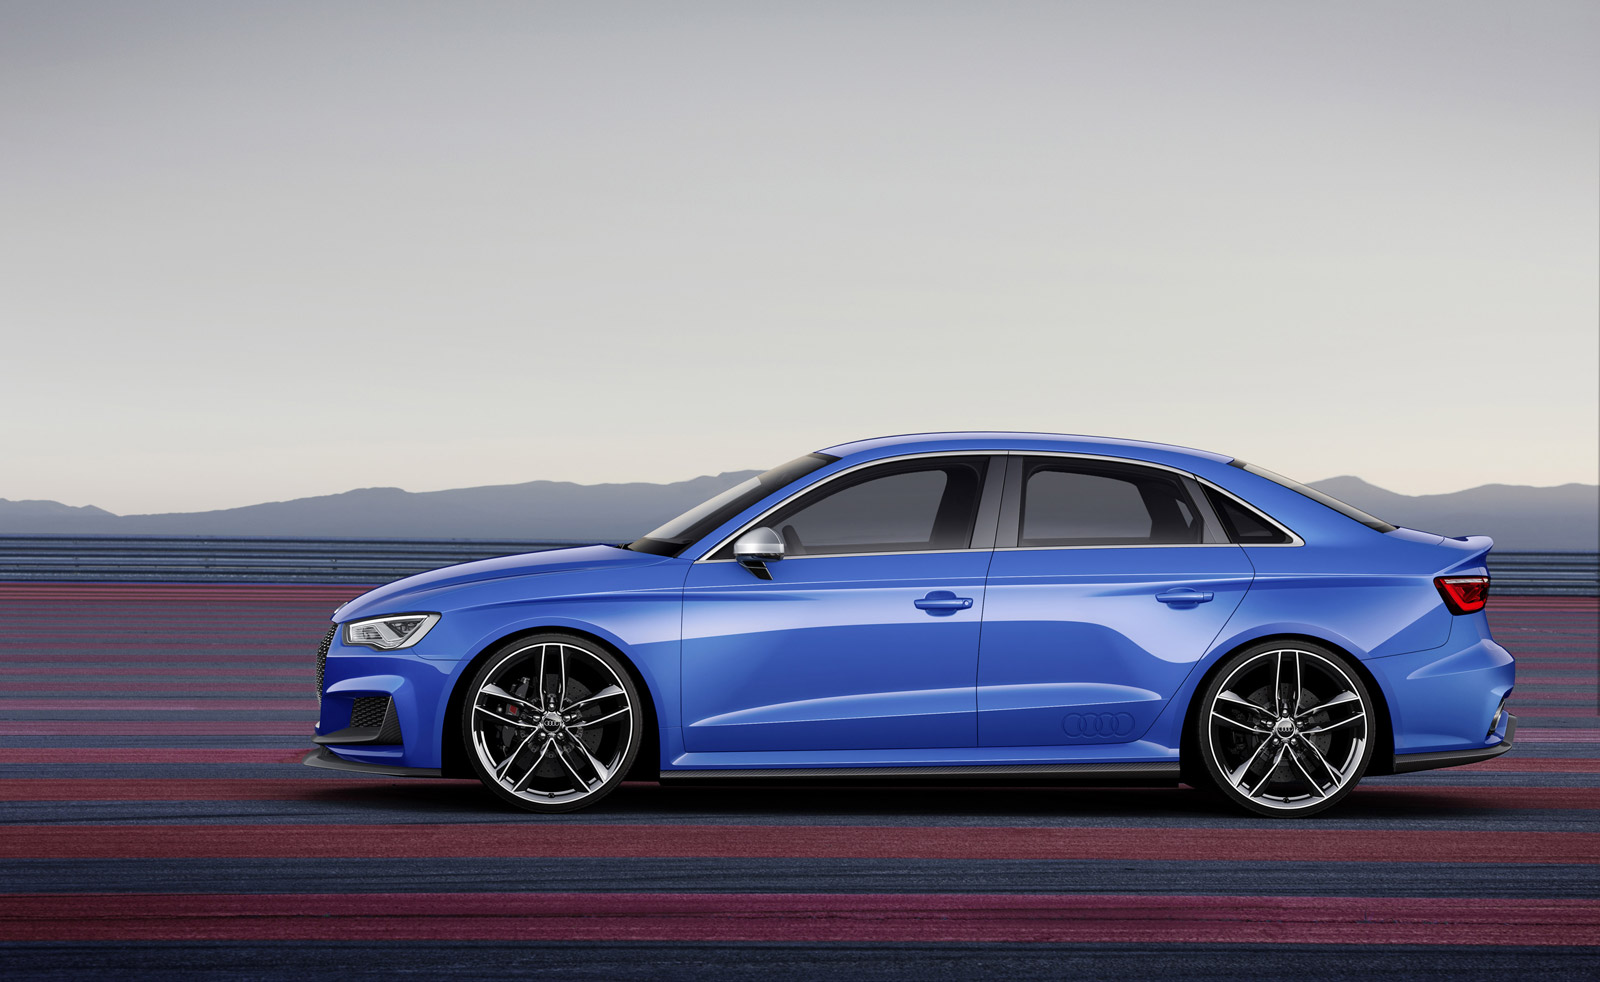 Thread audi rs3 confirmed for usa